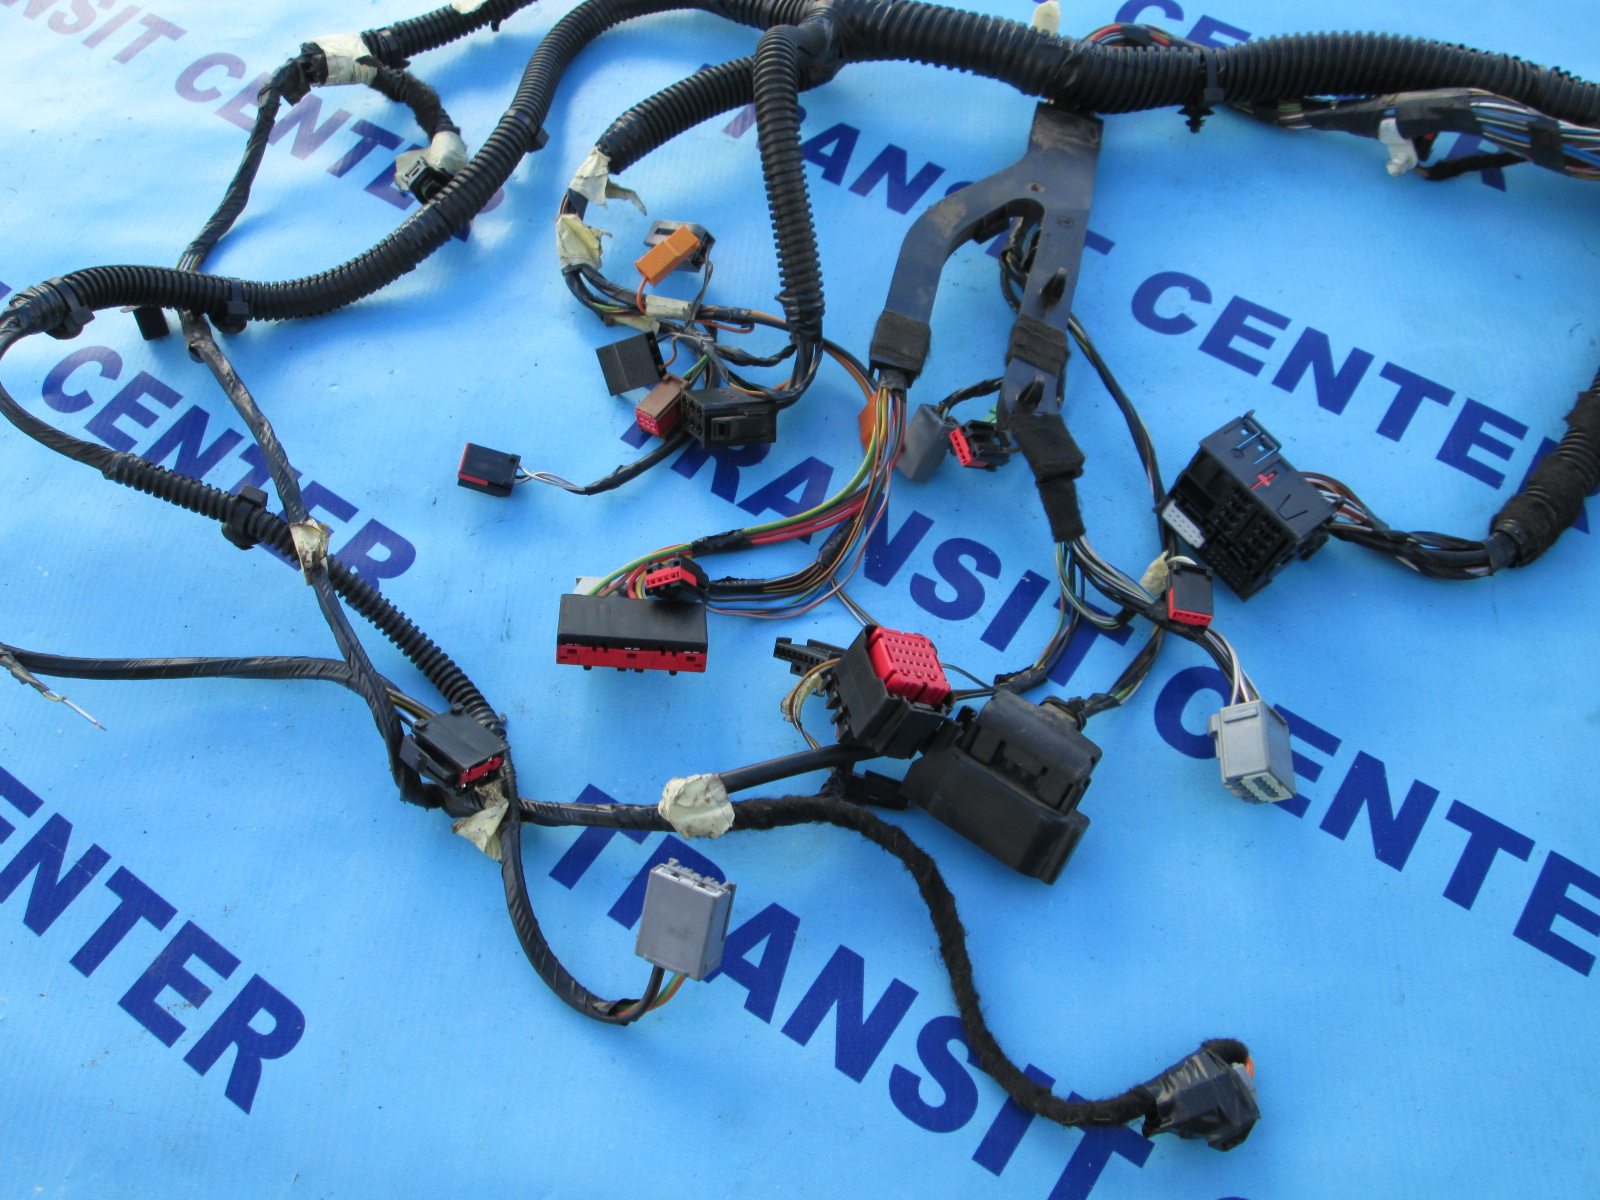 dashboard wiring loom harness ford transit connect 2009  rhd ford f700 wiring harness ford f700 wiring harness ford f700 wiring harness ford f700 wiring harness